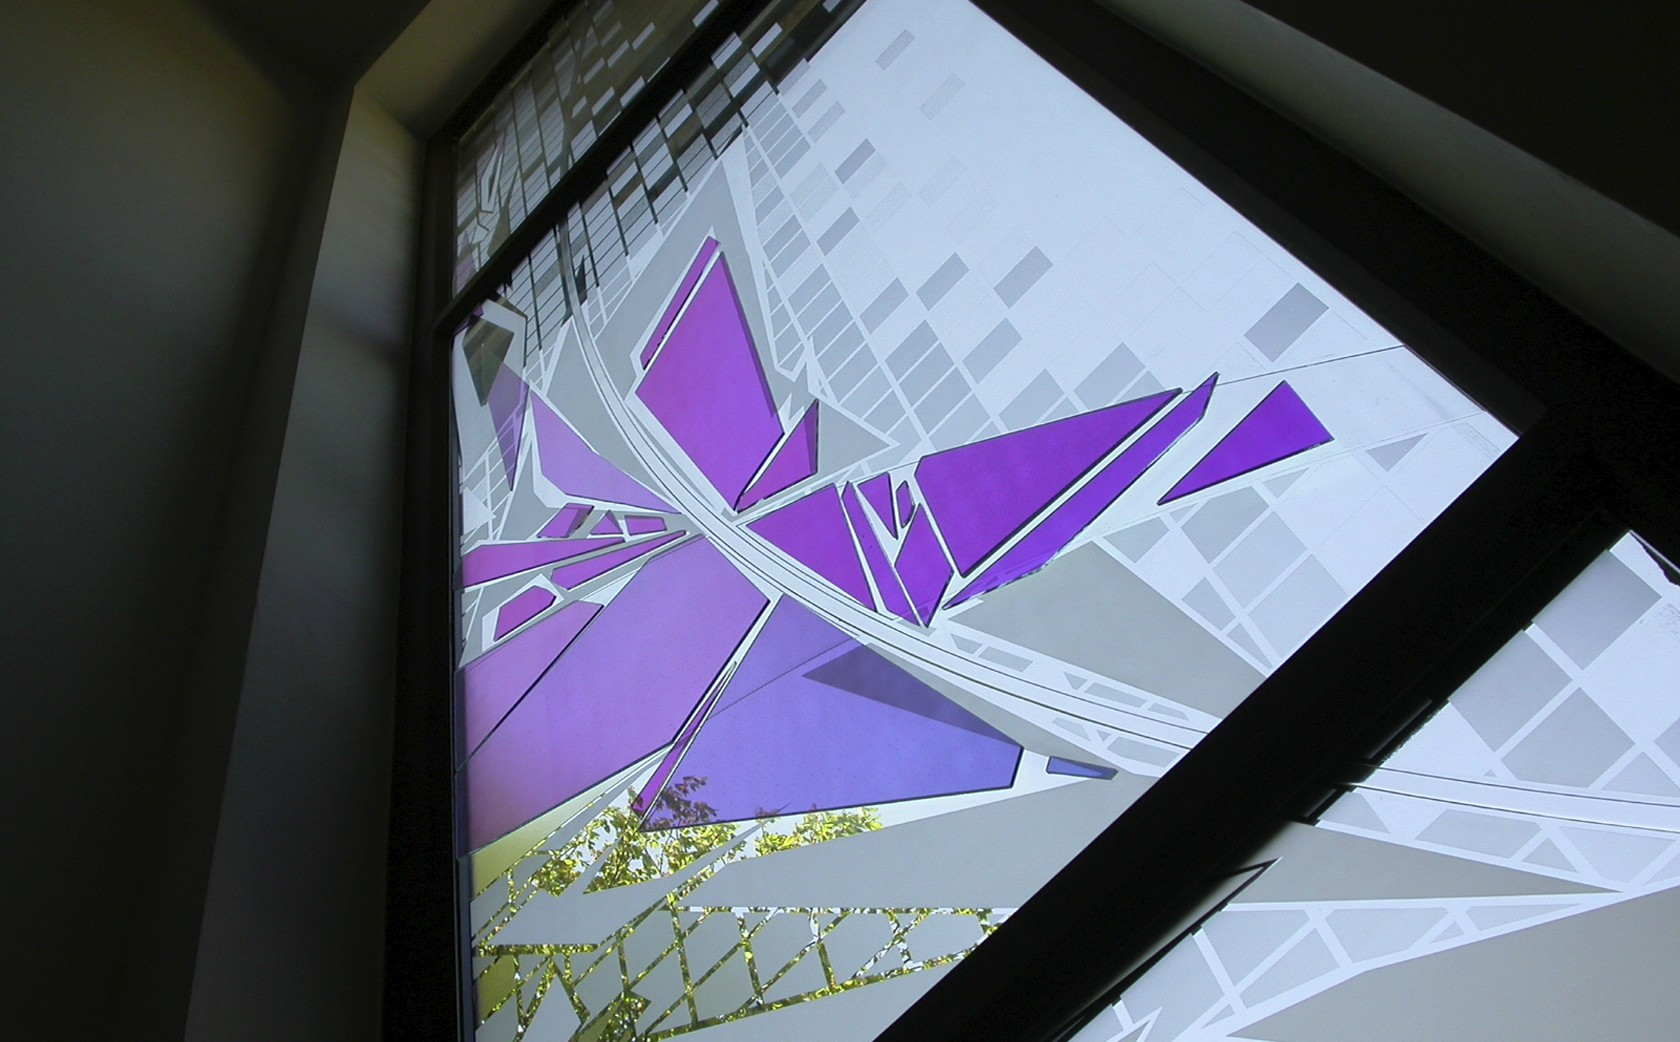 A bespoke glass art installation to create a focal point in response to a highly designed interior with changing light qualities of dichroic glass